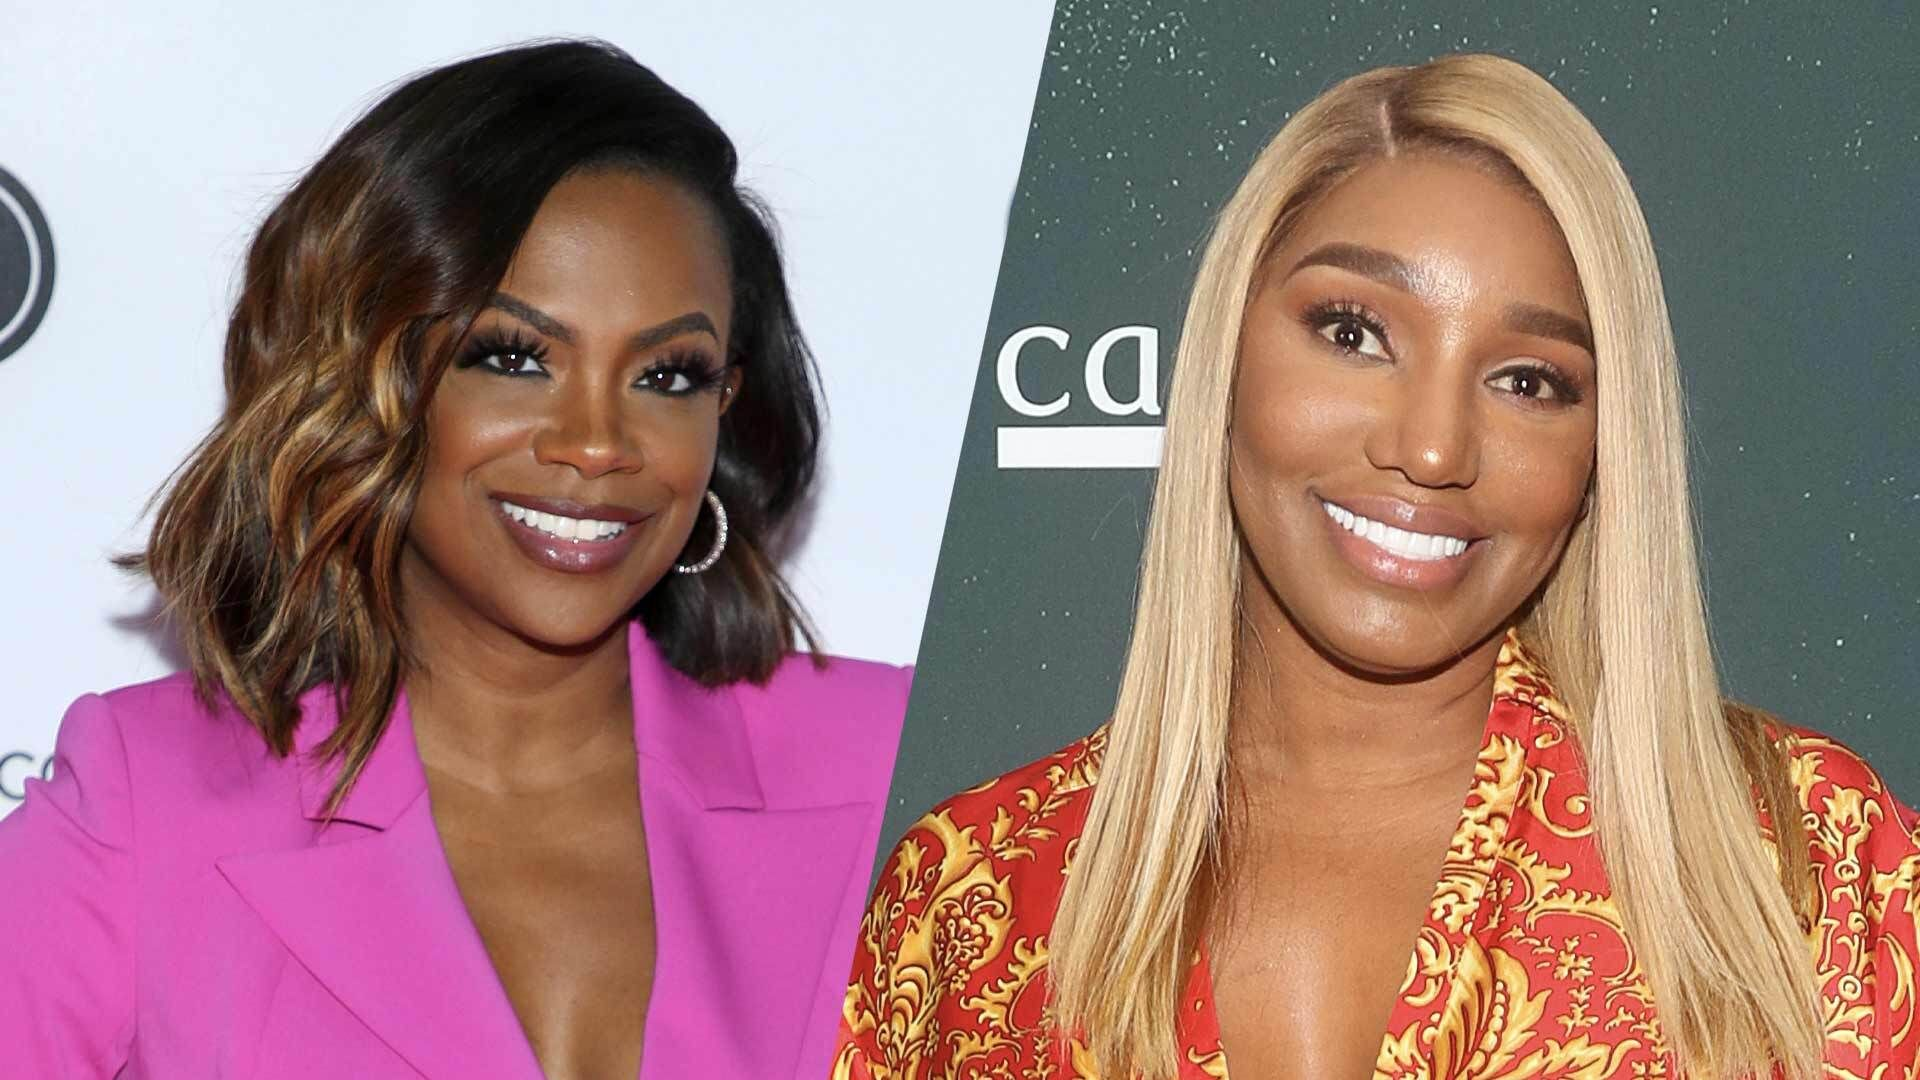 Kandi Burruss' Fans Appreciate Her Getting Along With NeNe Leakes On RHOA